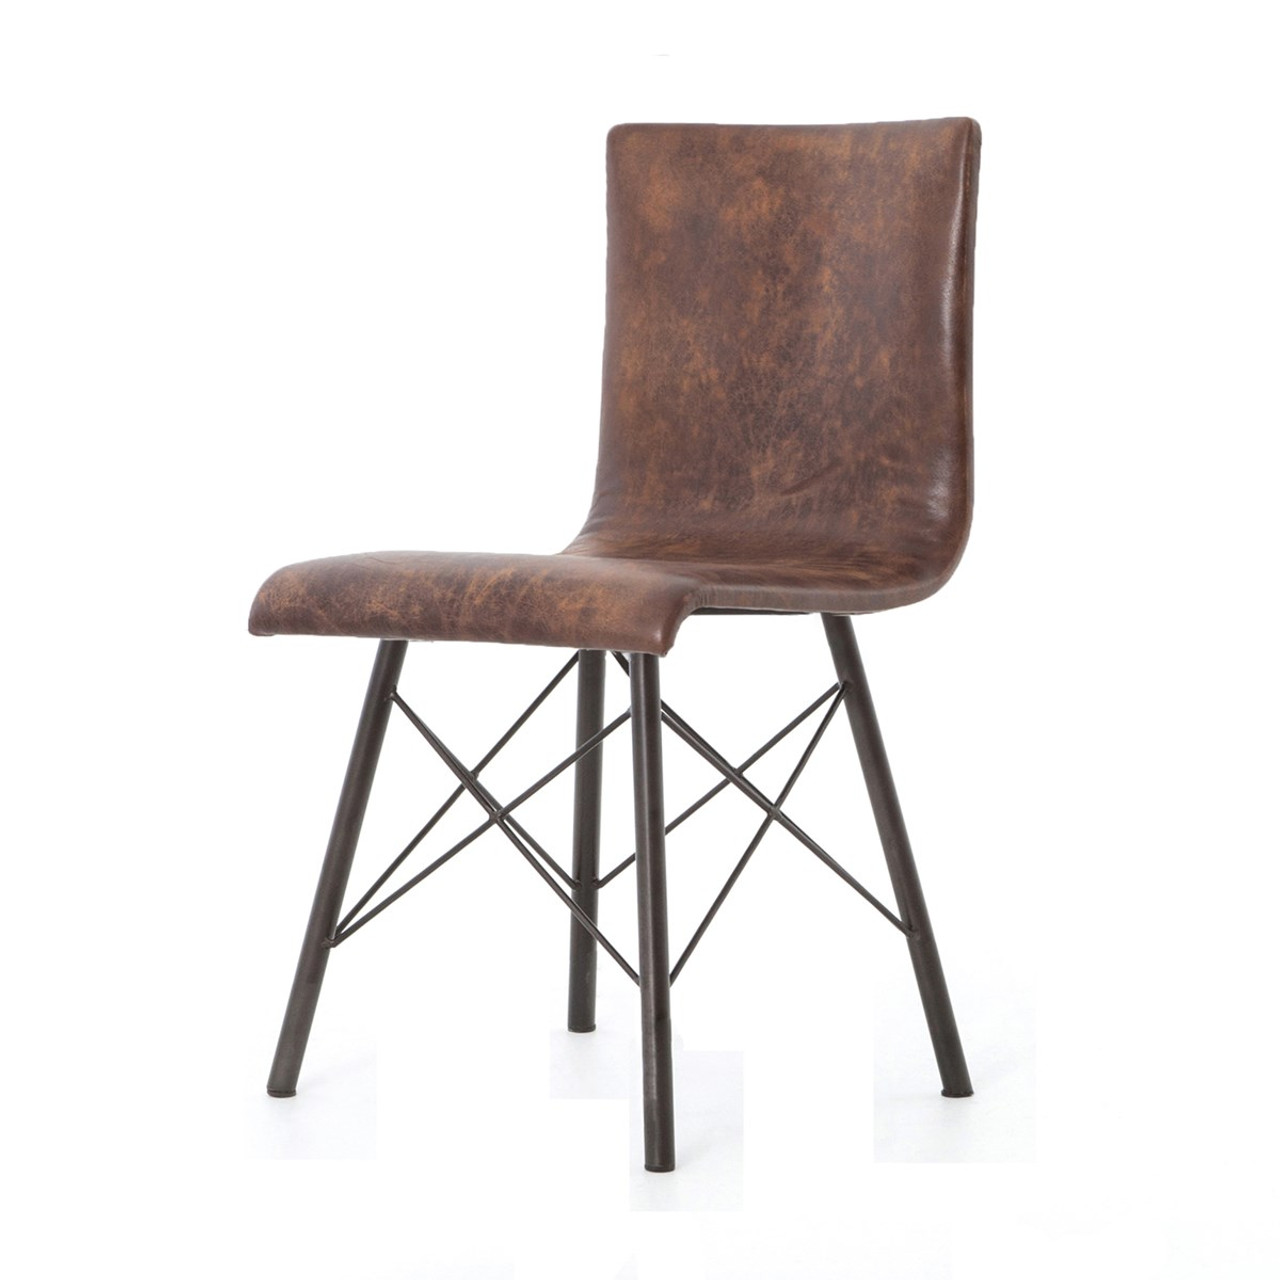 Dldrc50 Distressed Leather Dining Room Chairs Hausratversicherungkosten